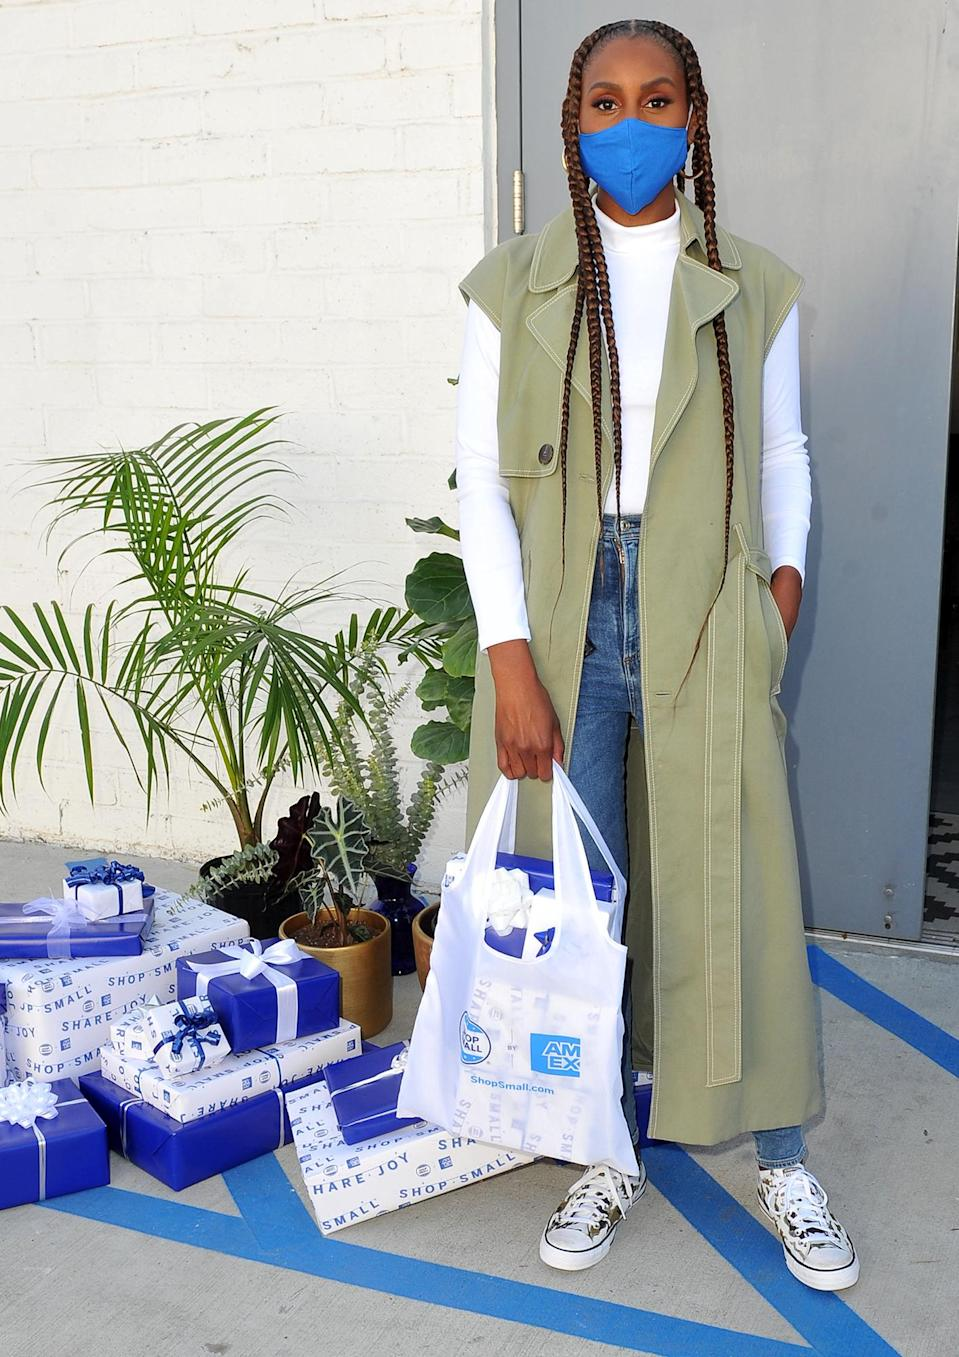 <p>Issa Rae spreads holiday cheer while celebrating Small Business Saturday with American Express in L.A.</p>